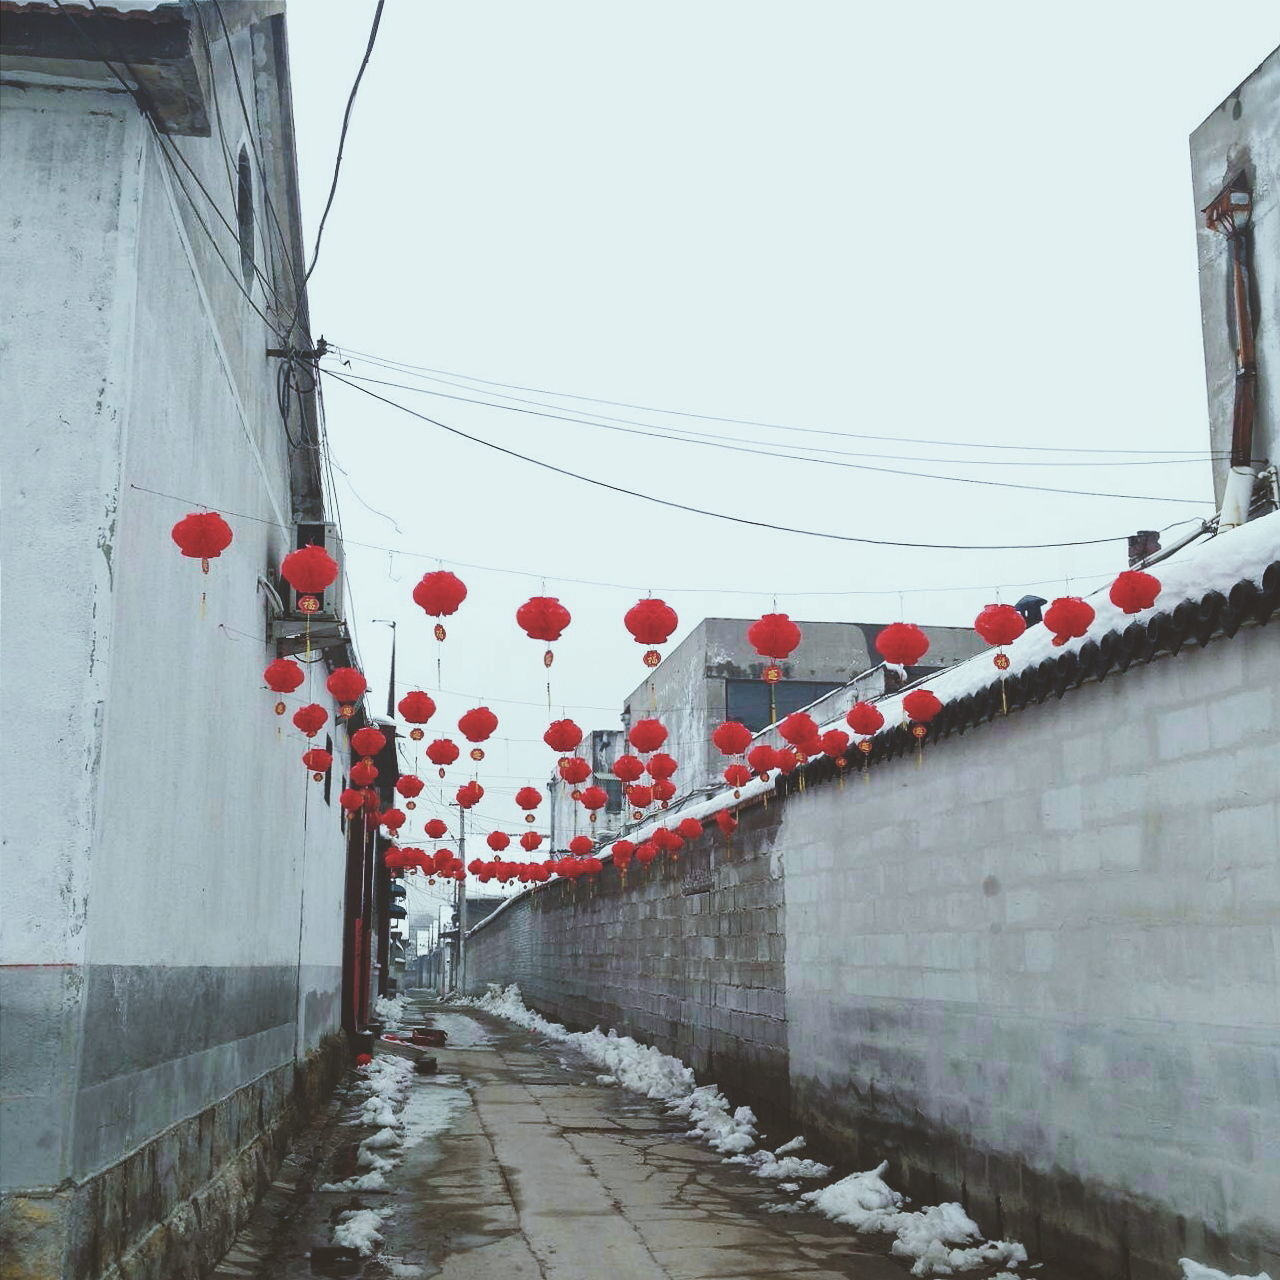 Qufu, China Sky Hanging Red Chinese Lantern Outdoors Day Built Structure No People The Way Forward Architecture Flag Red Choice Hanging China Culture China Art China Dekor China. China China In My Eyes Confucious Travel Destinations Architecture Chinese Lantern Festival Celebration